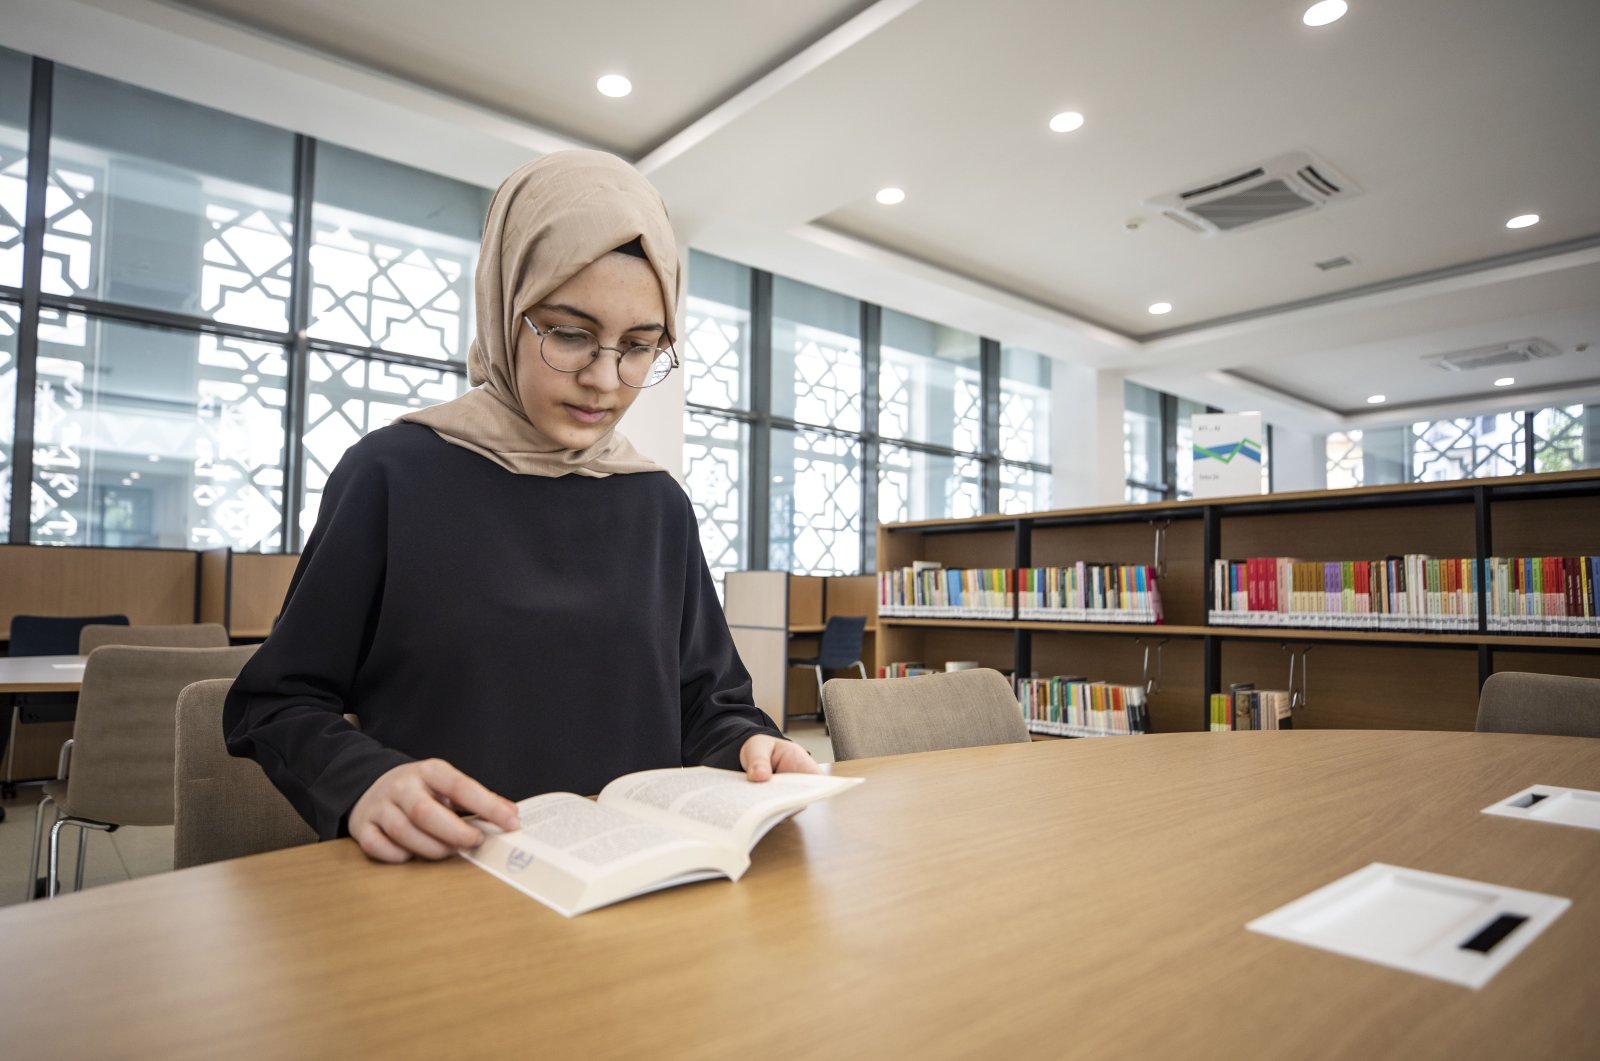 Iclal Dağcı, a 10th-grade student at Kartal Anatolian Imam-Hatip High School in Istanbul, speaks five languages including English, French, Italian, Arabic and Spanish. (AA Photo)